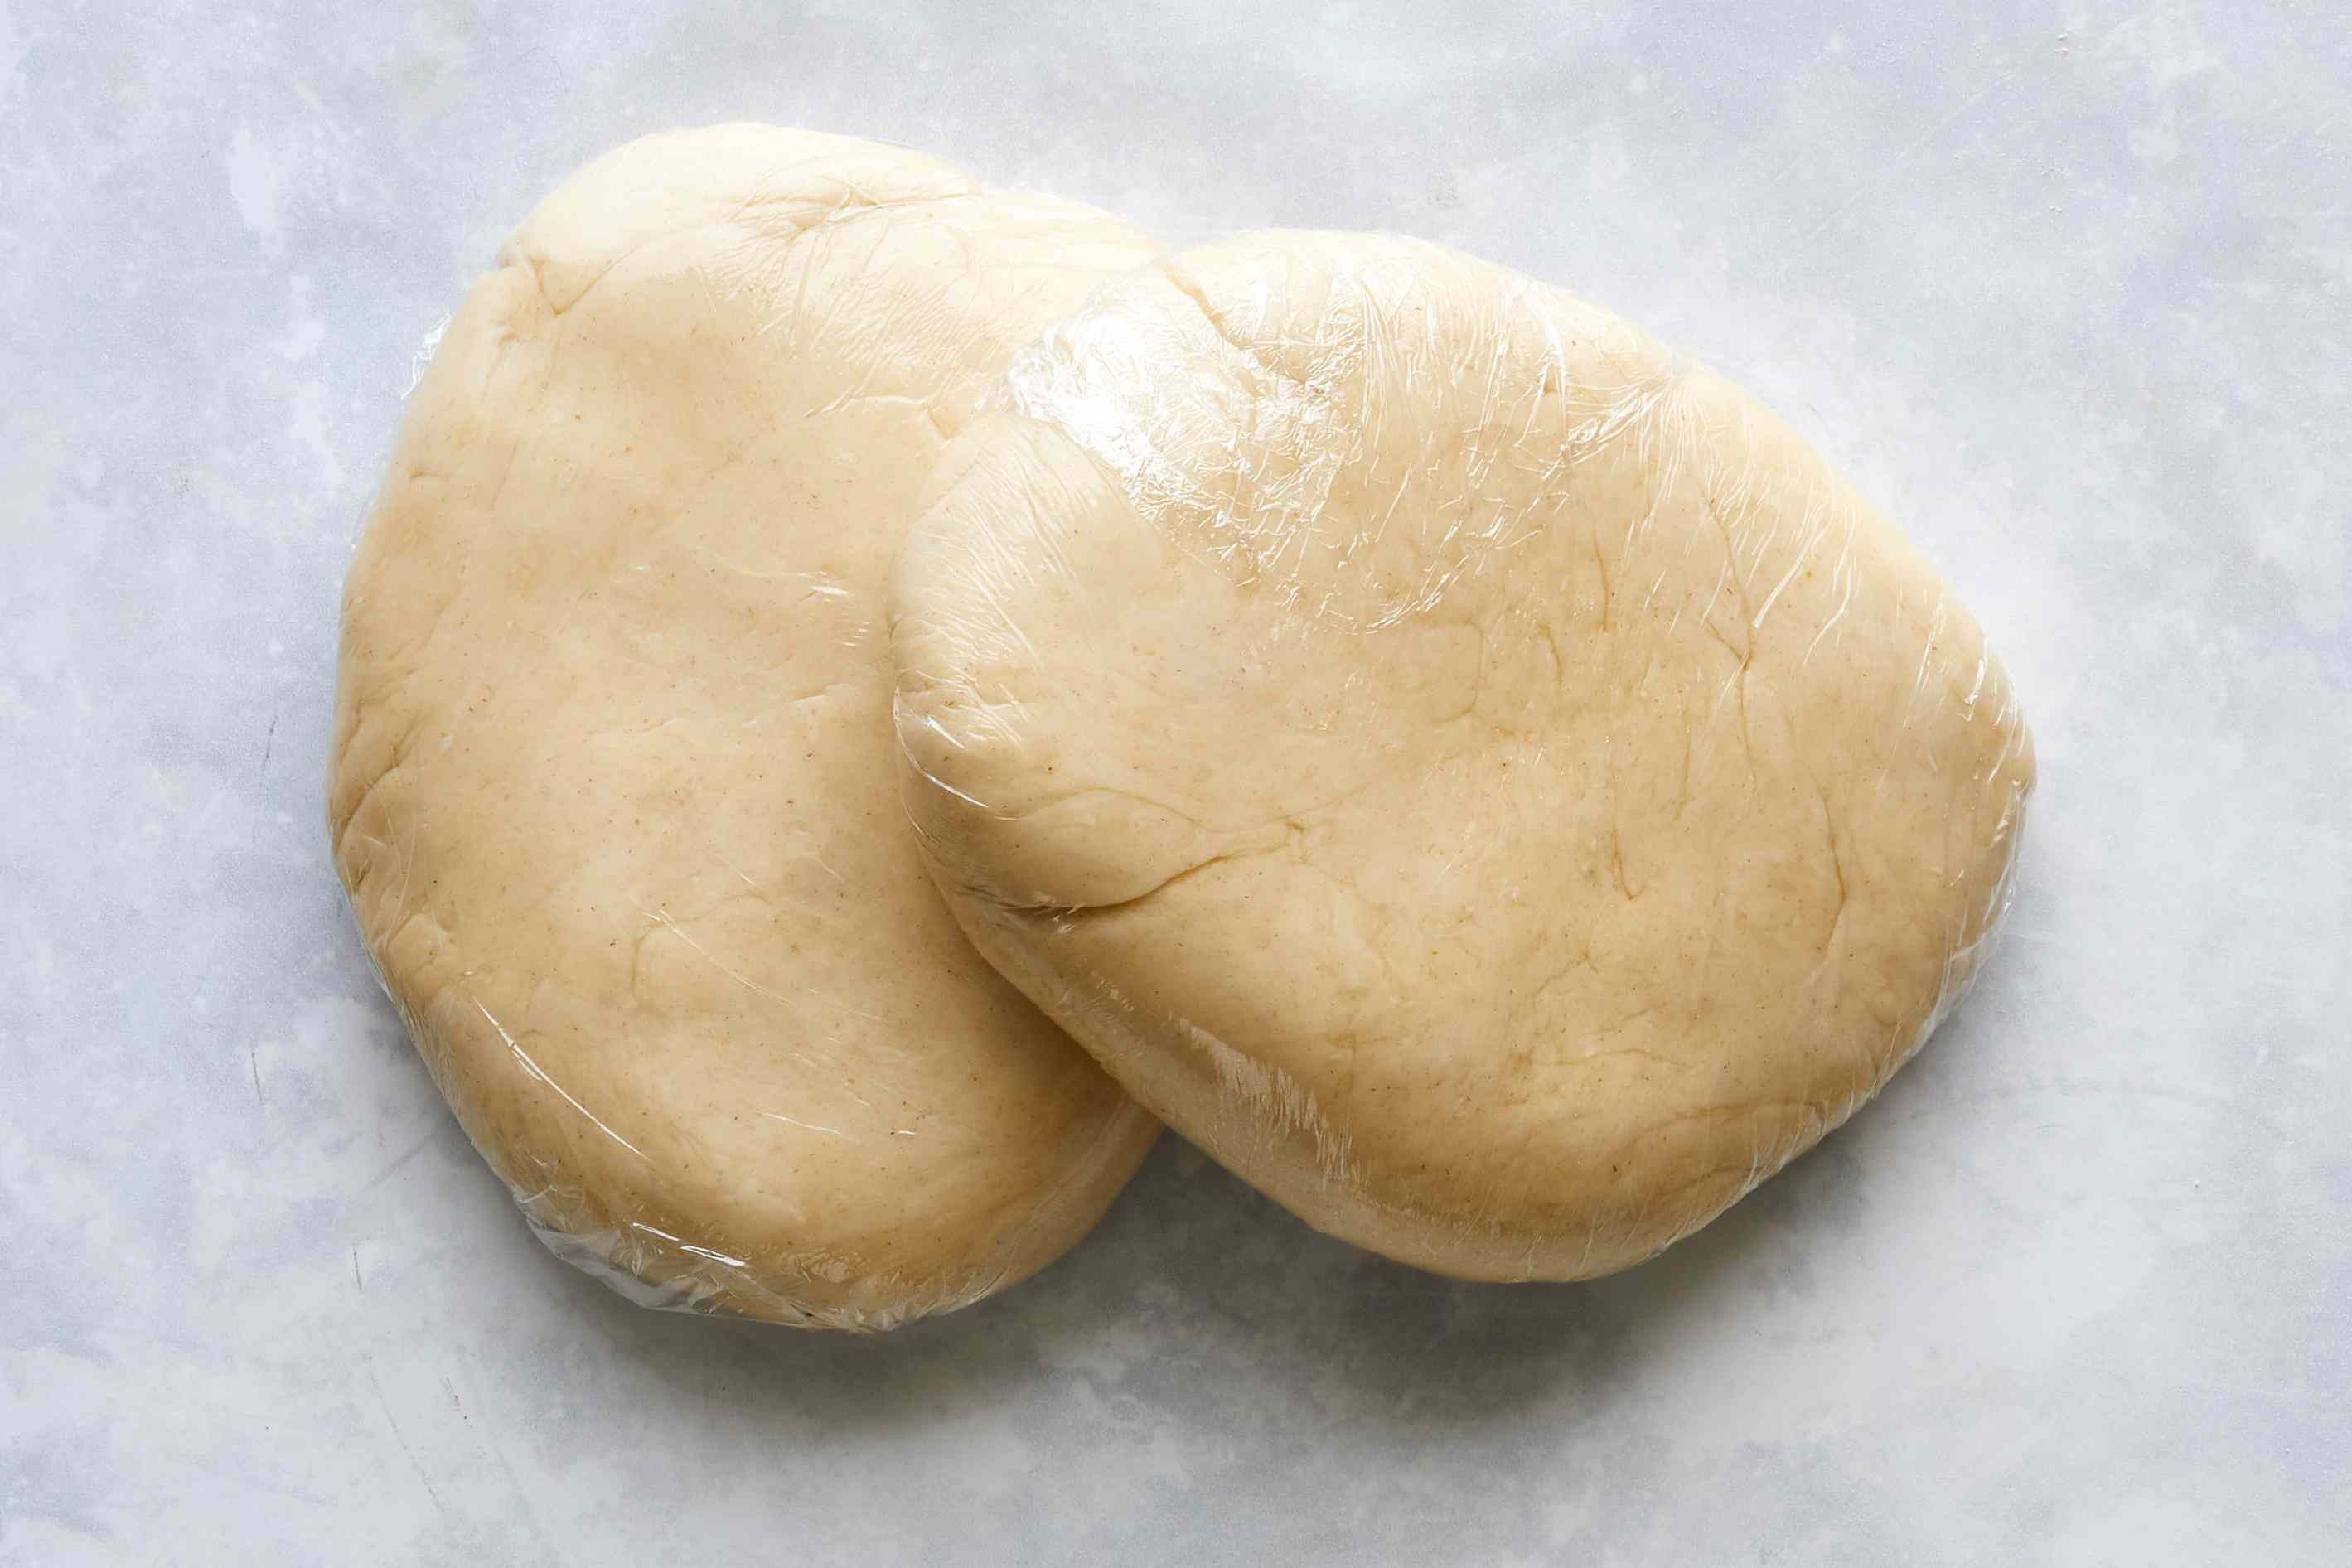 Balls of pie crust dough wrapped in plastic wrap